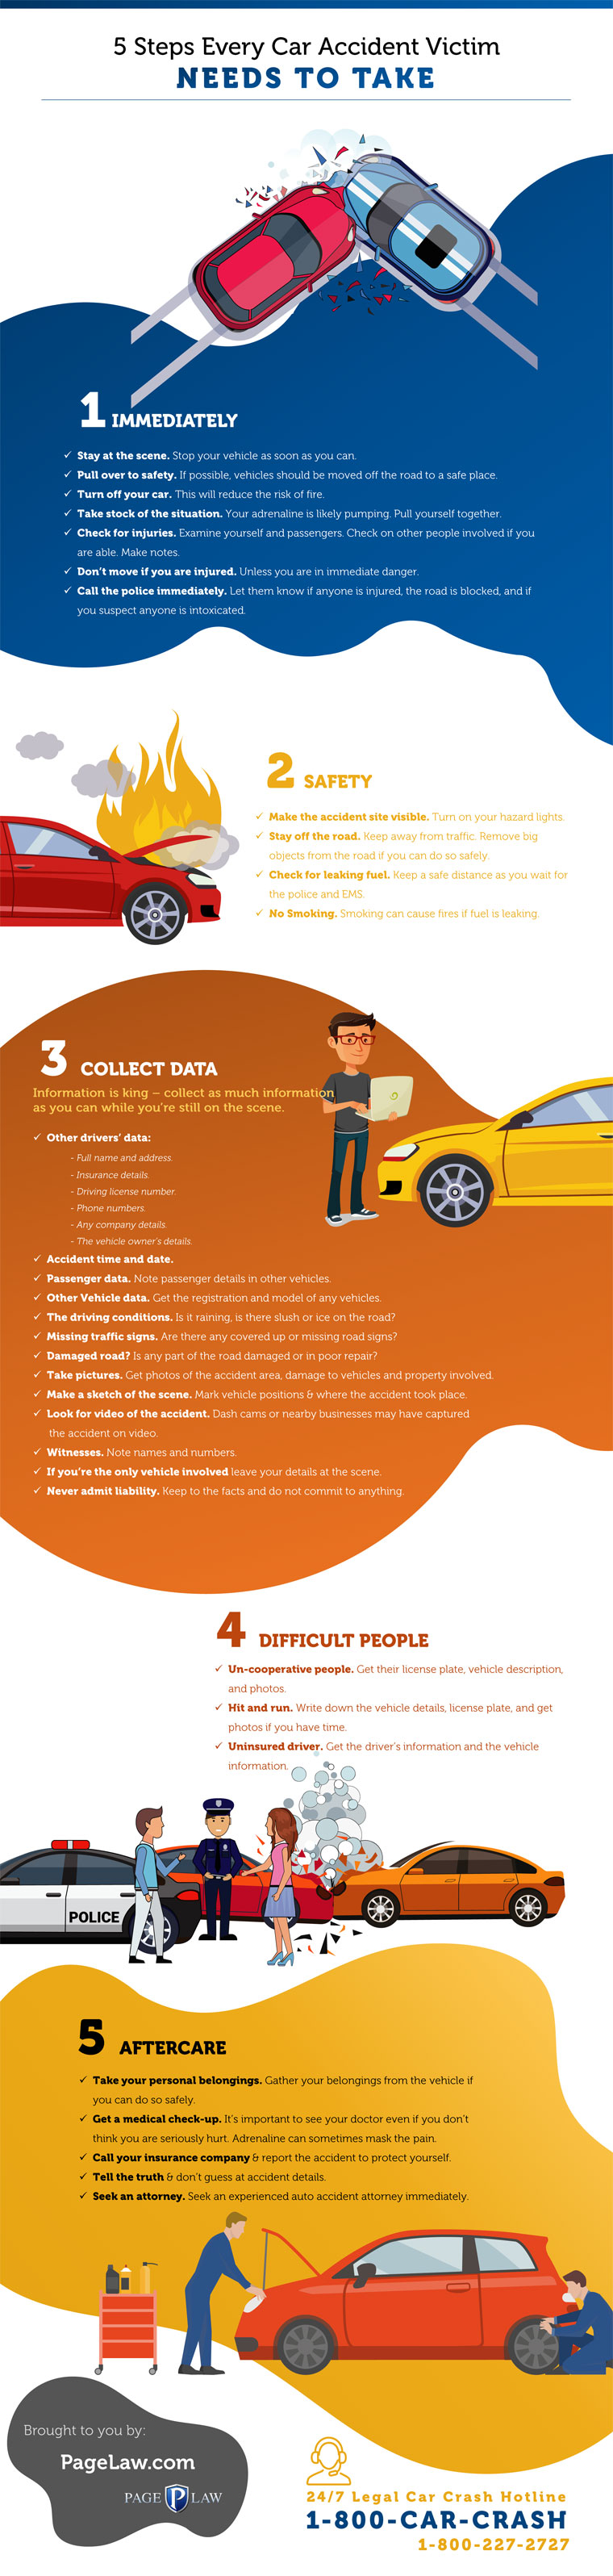 Five steps to take after a car accident